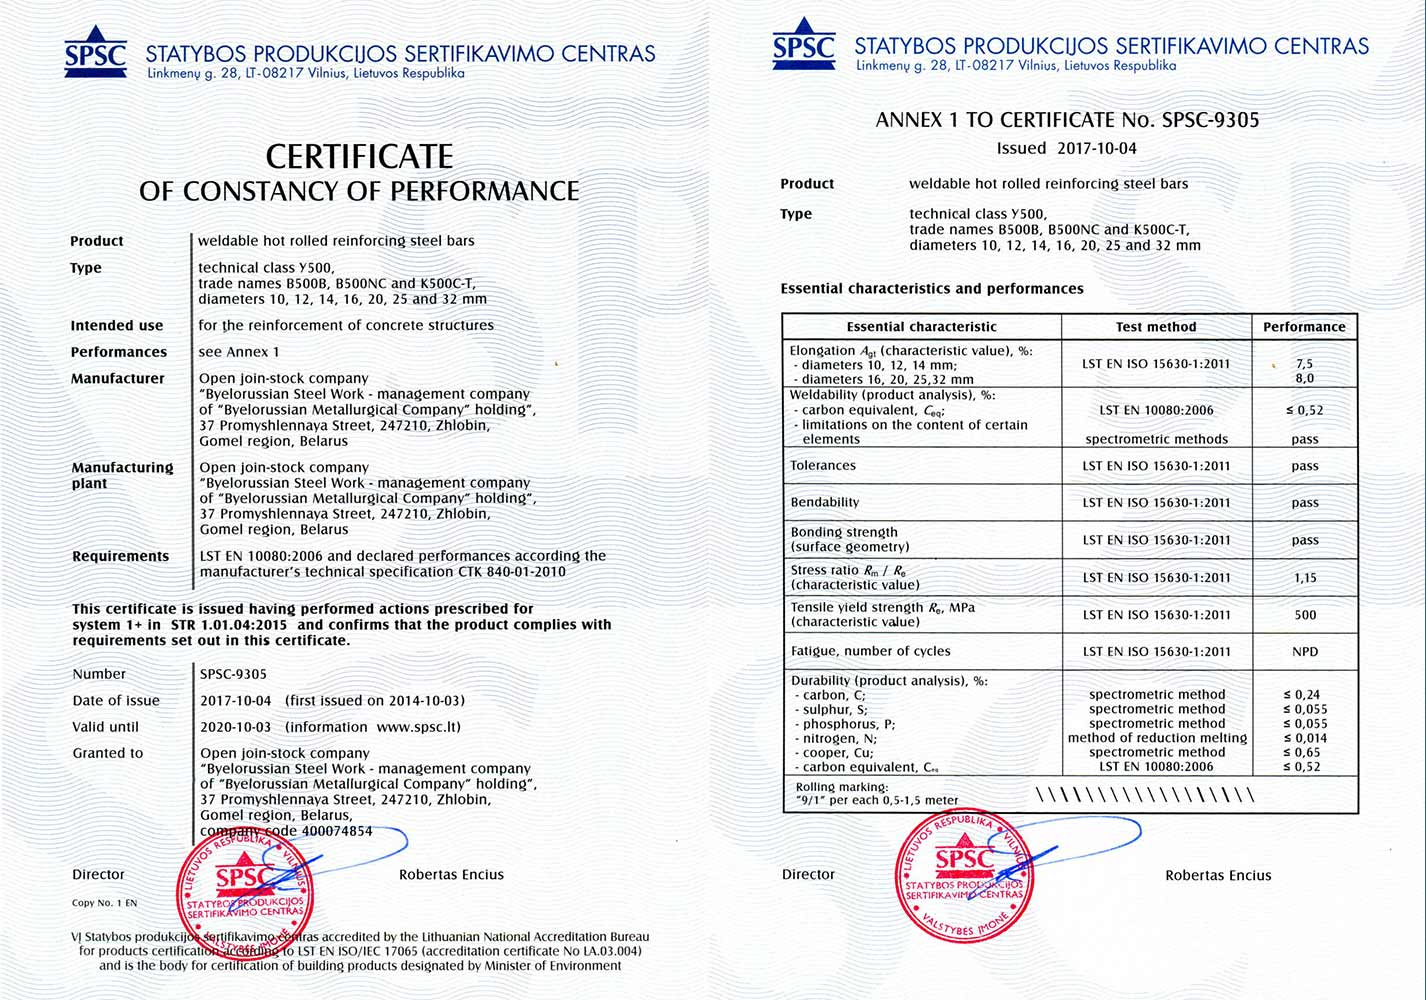 Certificate  SPSC-9305, SPSC, Lithuania, for production of hot-rolled reinforcing  steel  У500 (Grade B500B, B500NC, K500C-T) Ø 10, 12, 14, 16, 20, 25 and 32 mm in conformity with standard LST EN 10080:2006 and producer's technical specification СТК 840-01-2010.